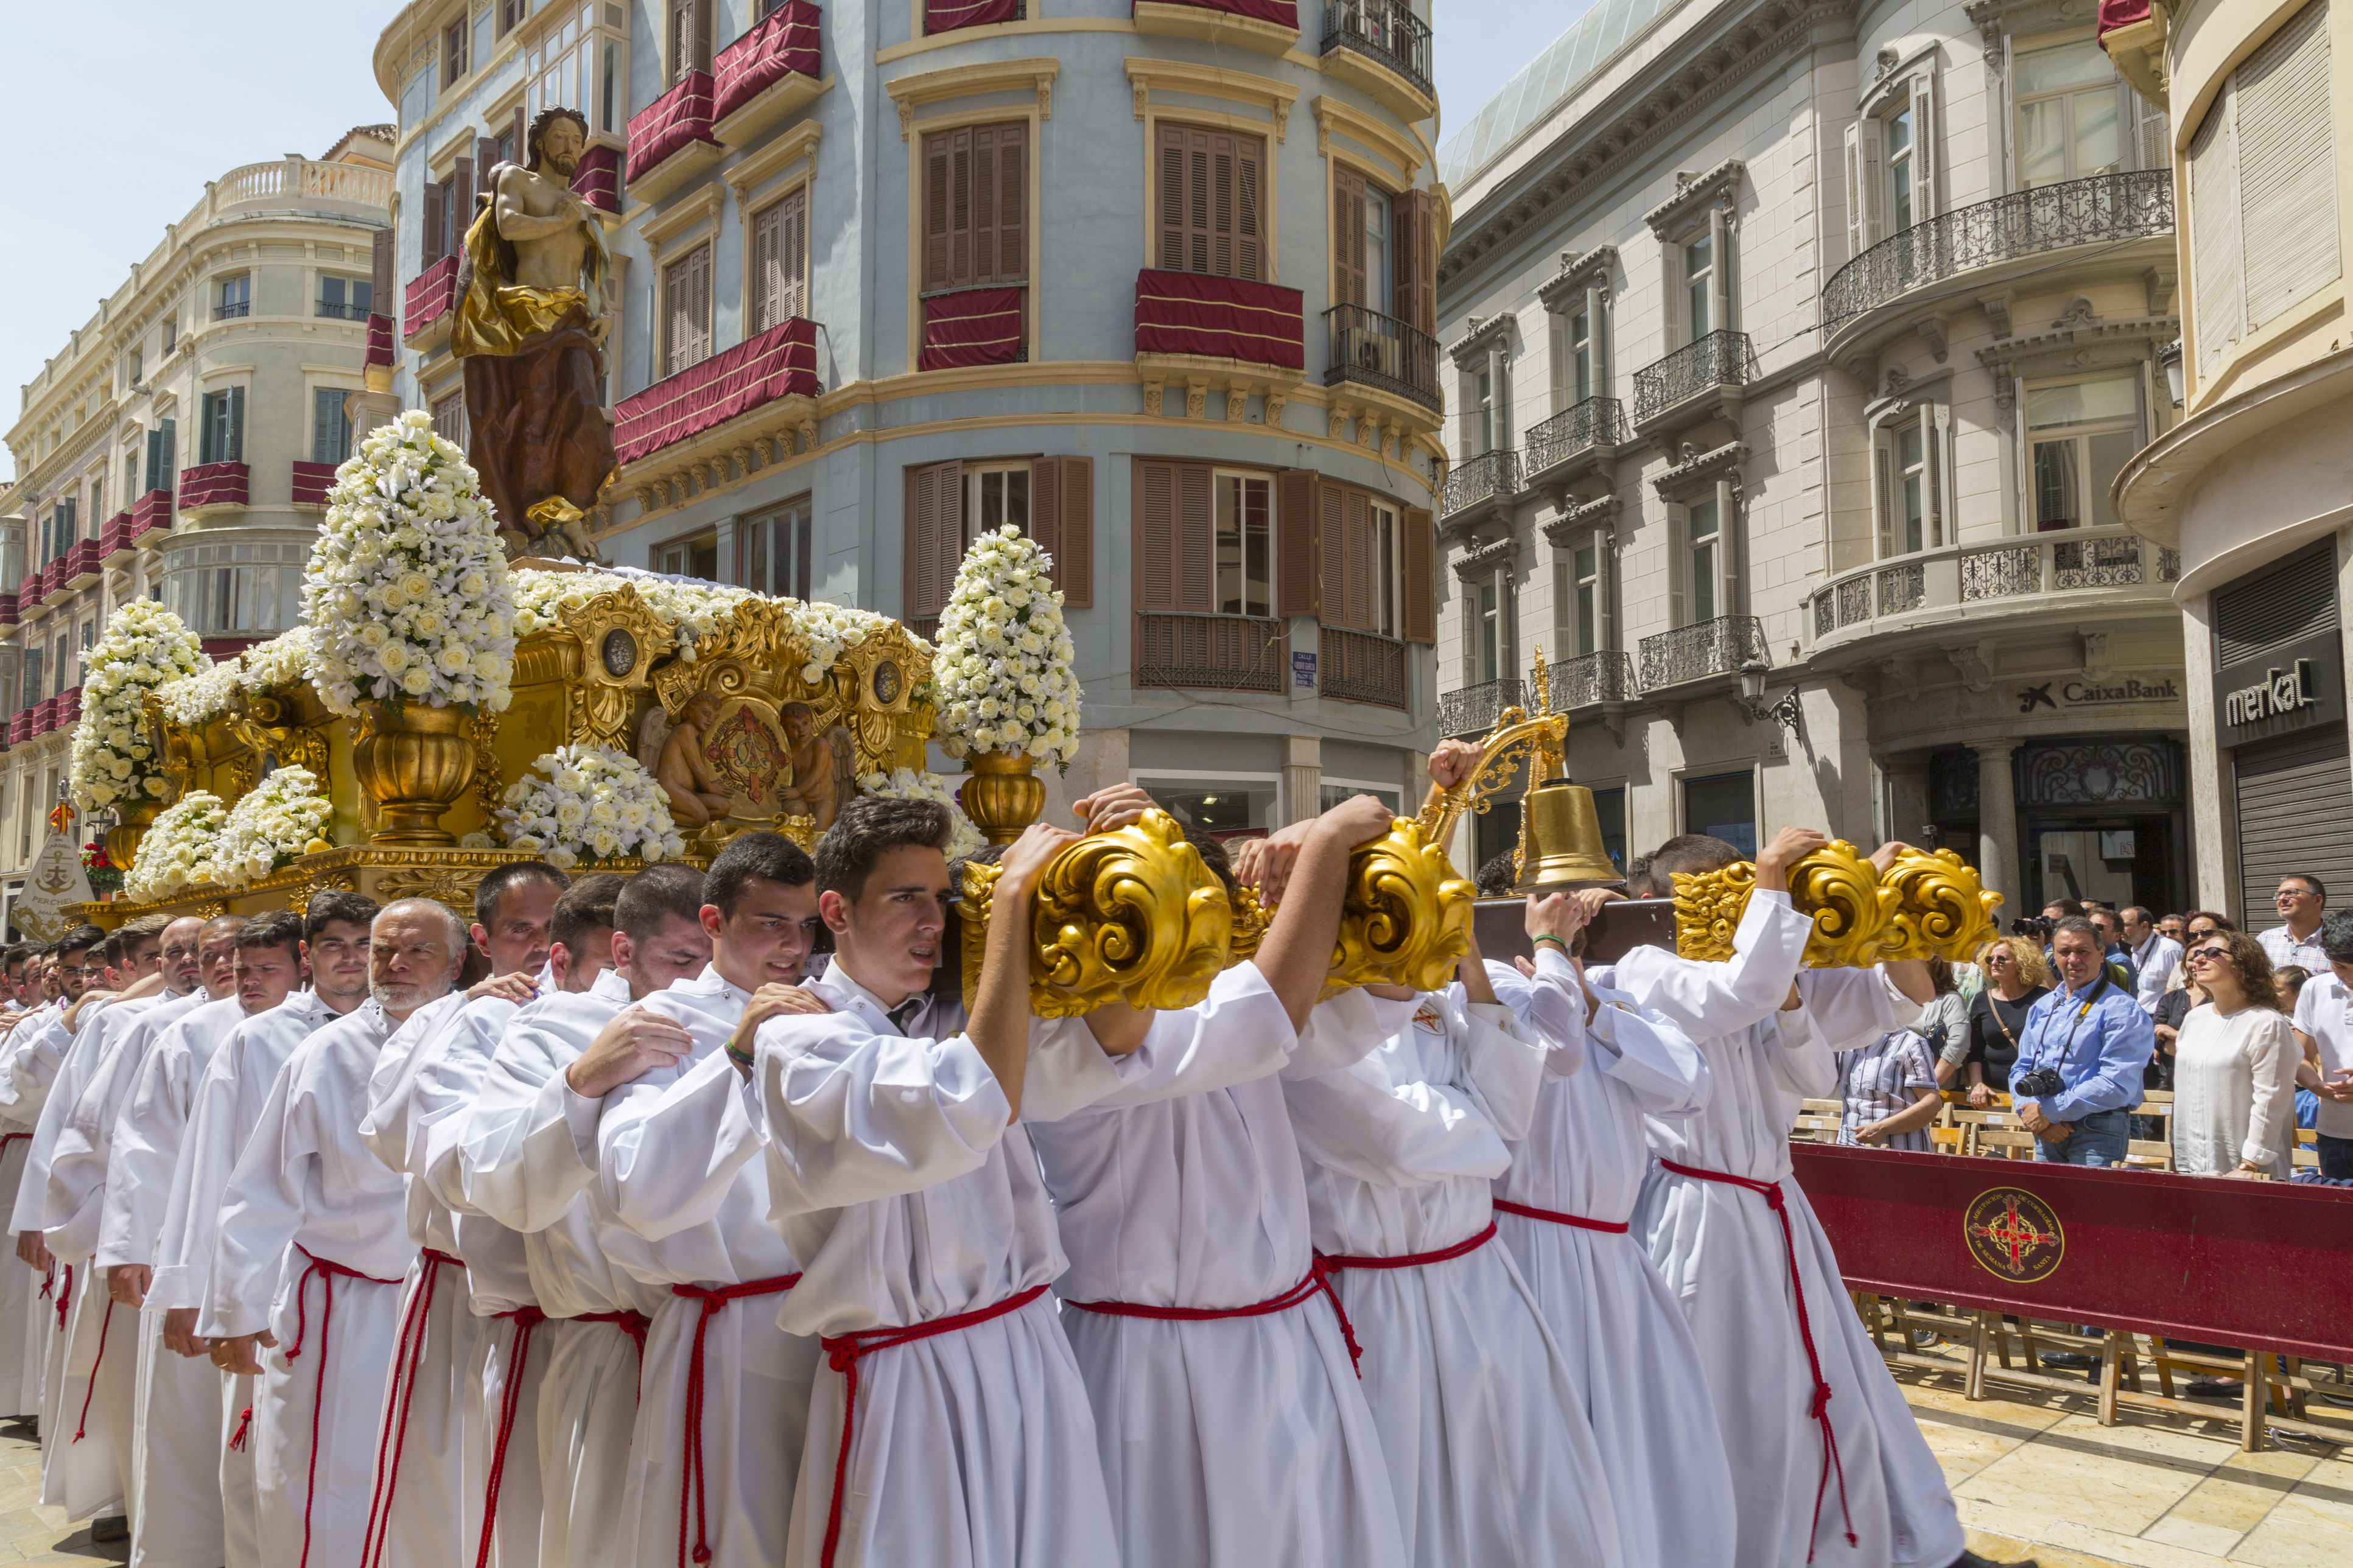 Locals taking part in the Resurrection Parade on Easter Sunday in Spain.